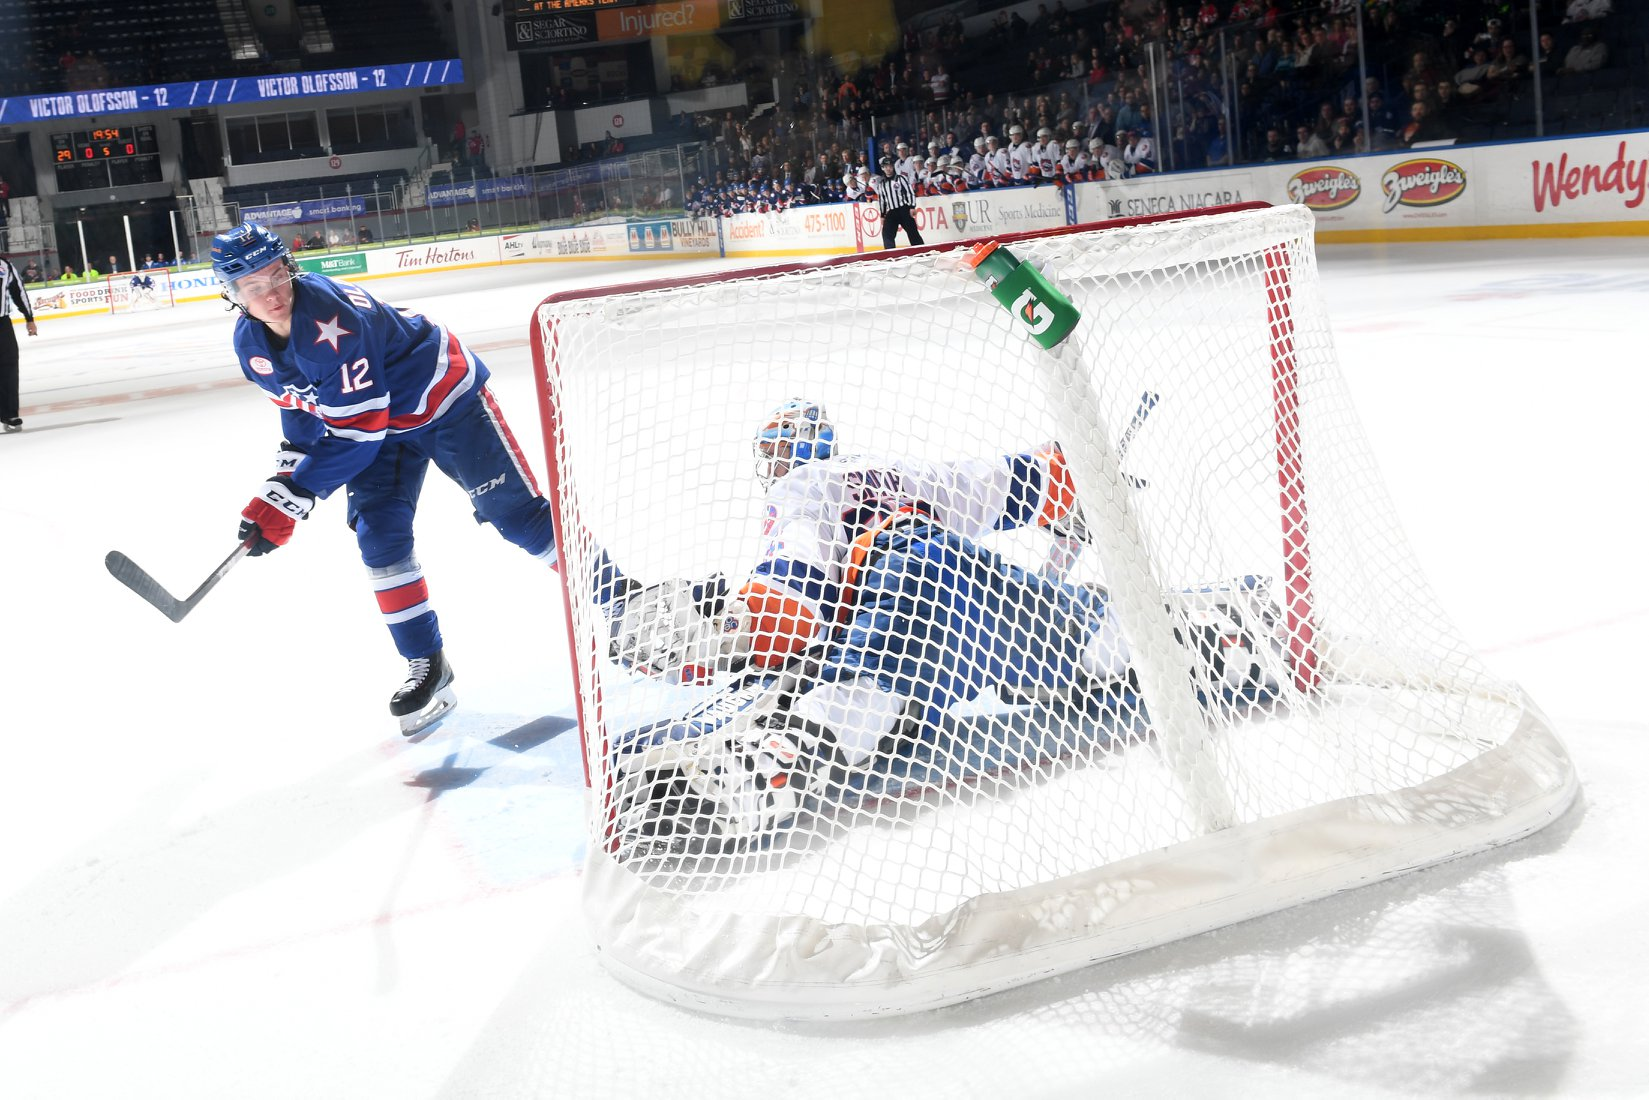 Shootout Goal by Olofsson Completes Comeback Win